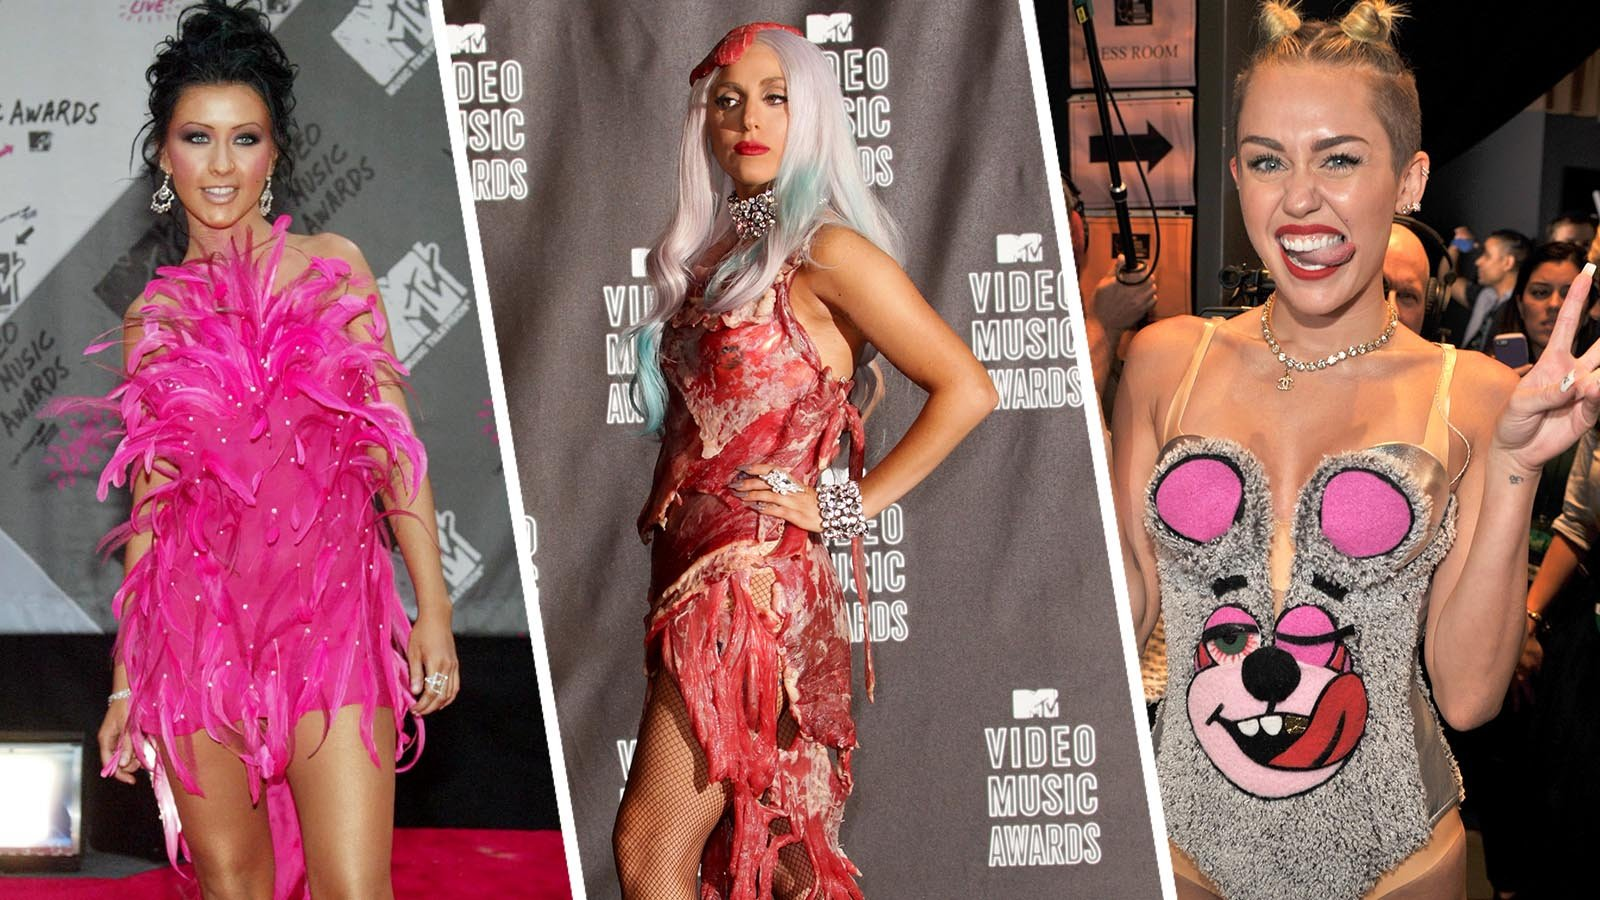 The wildest VMA's looks of all time!